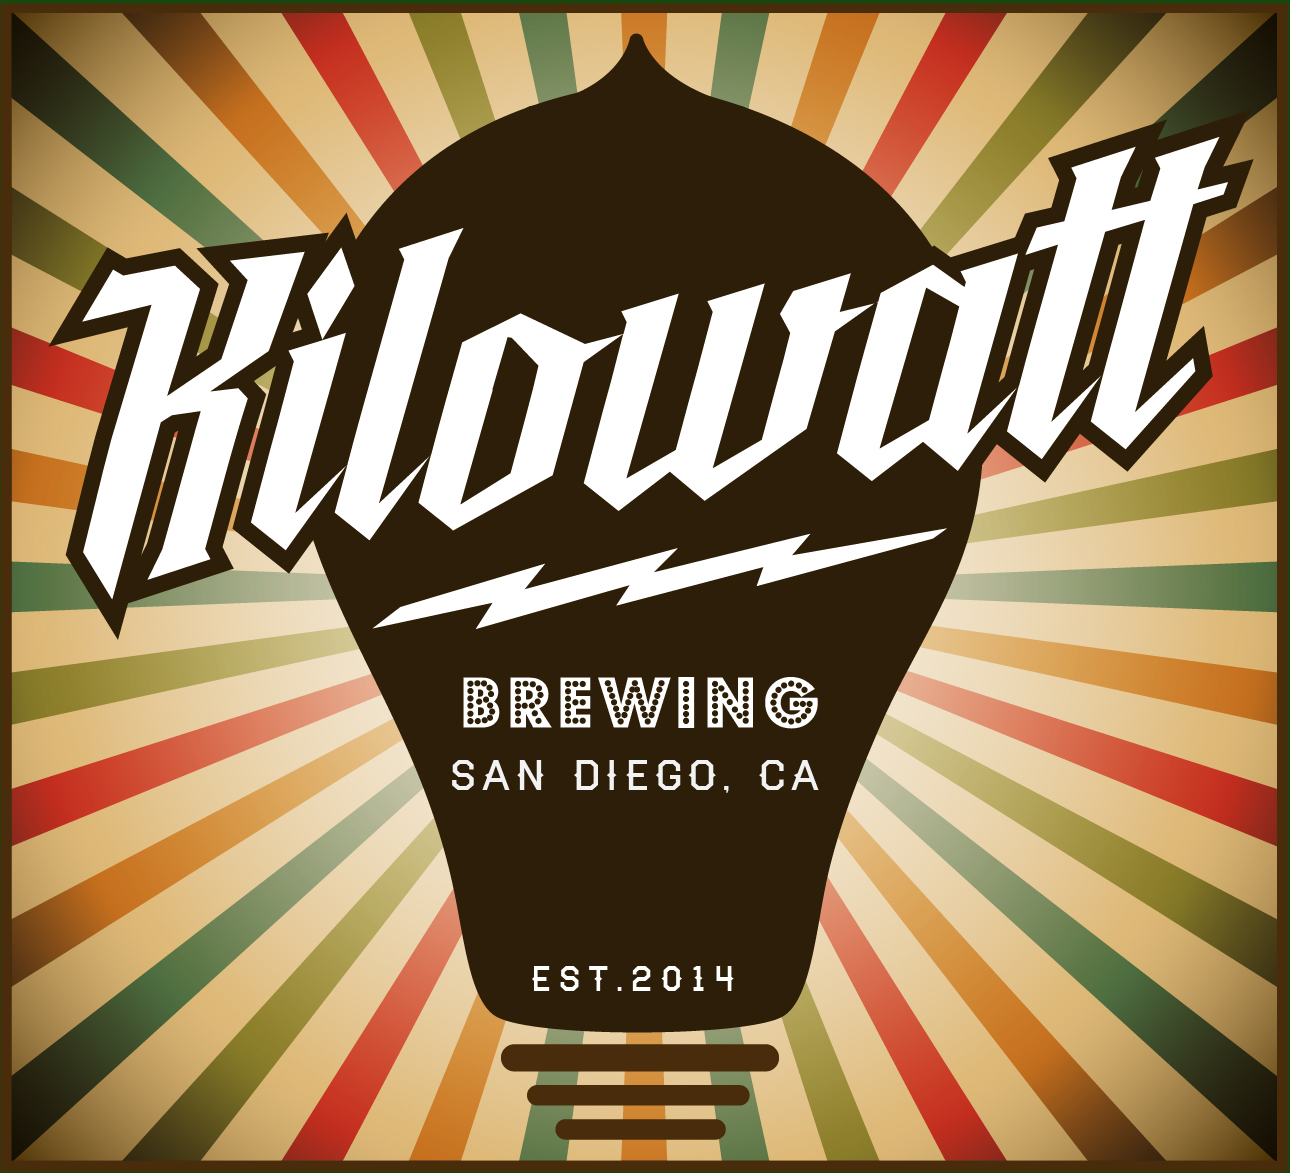 Kilowatt Brewing